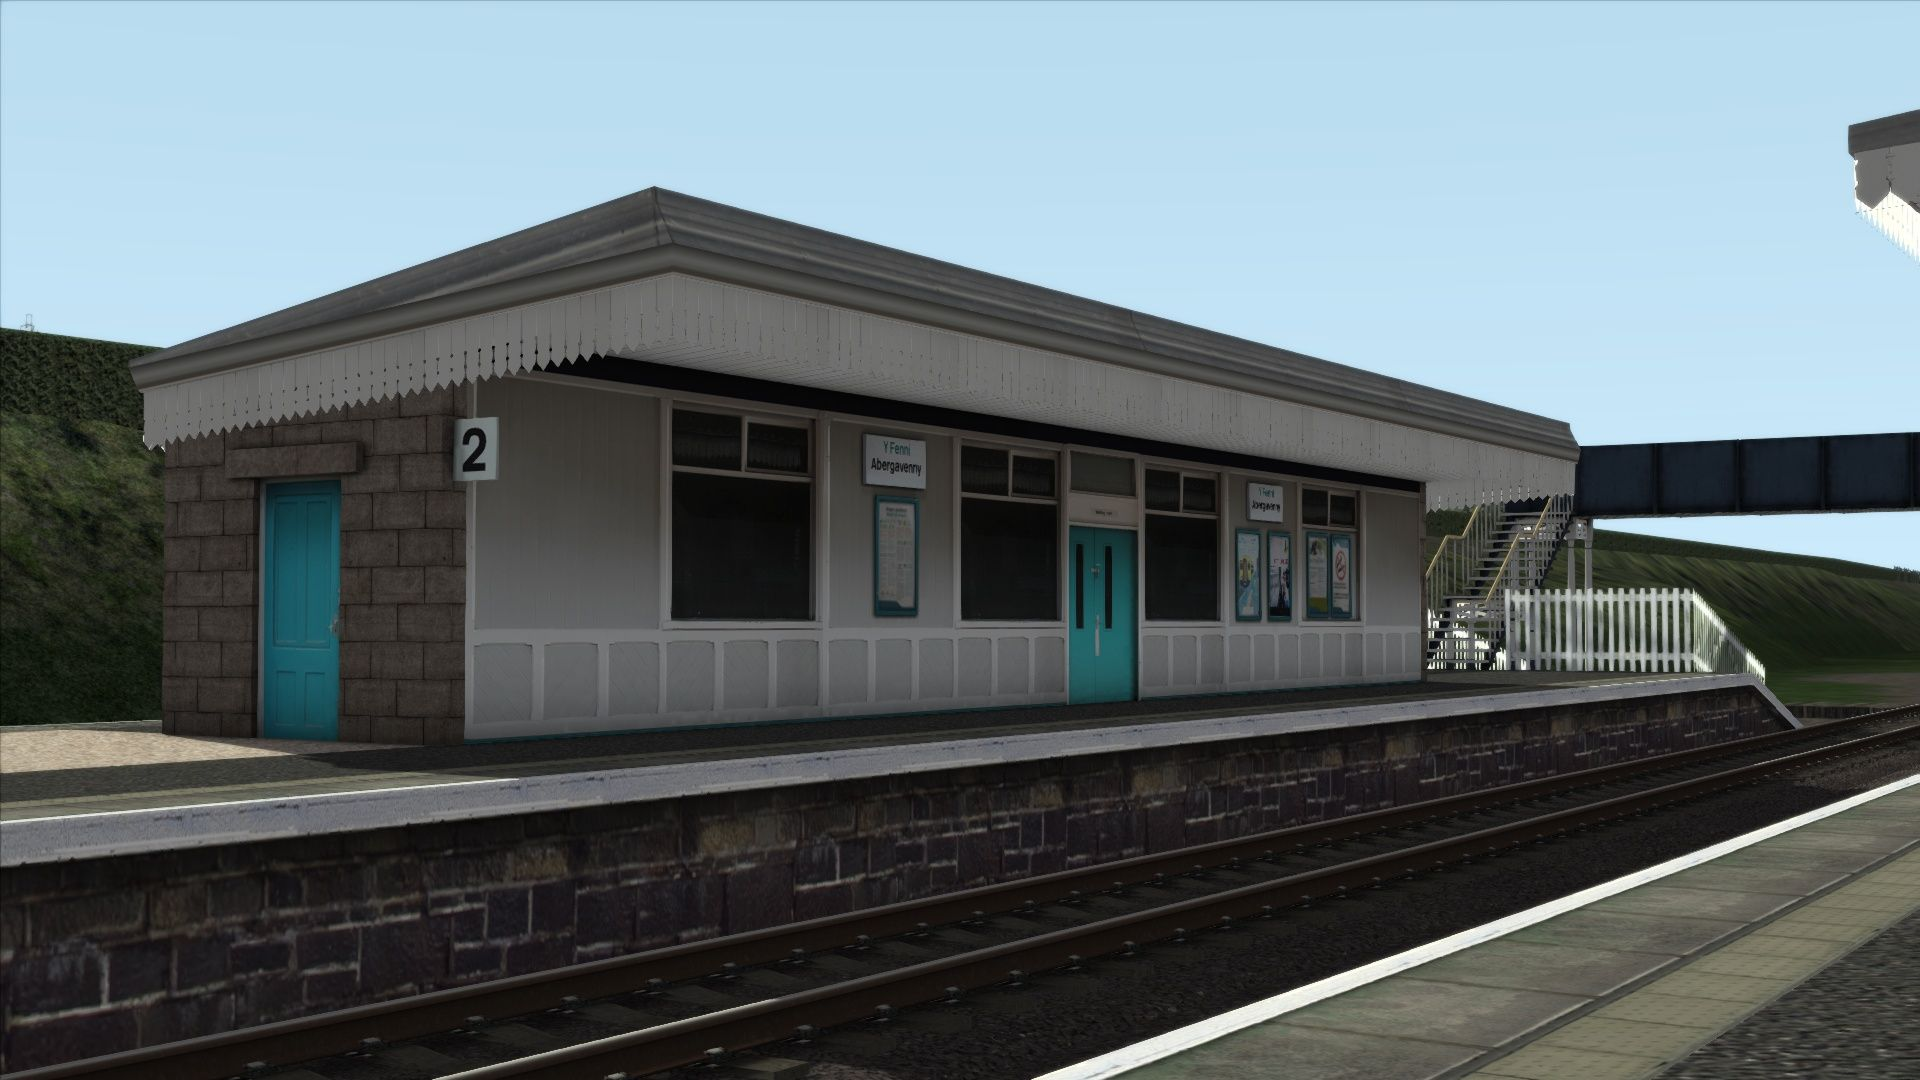 Screenshot_[BMG] Welsh Marches Line - Newport to Shrewsbury_51.81735--3.009